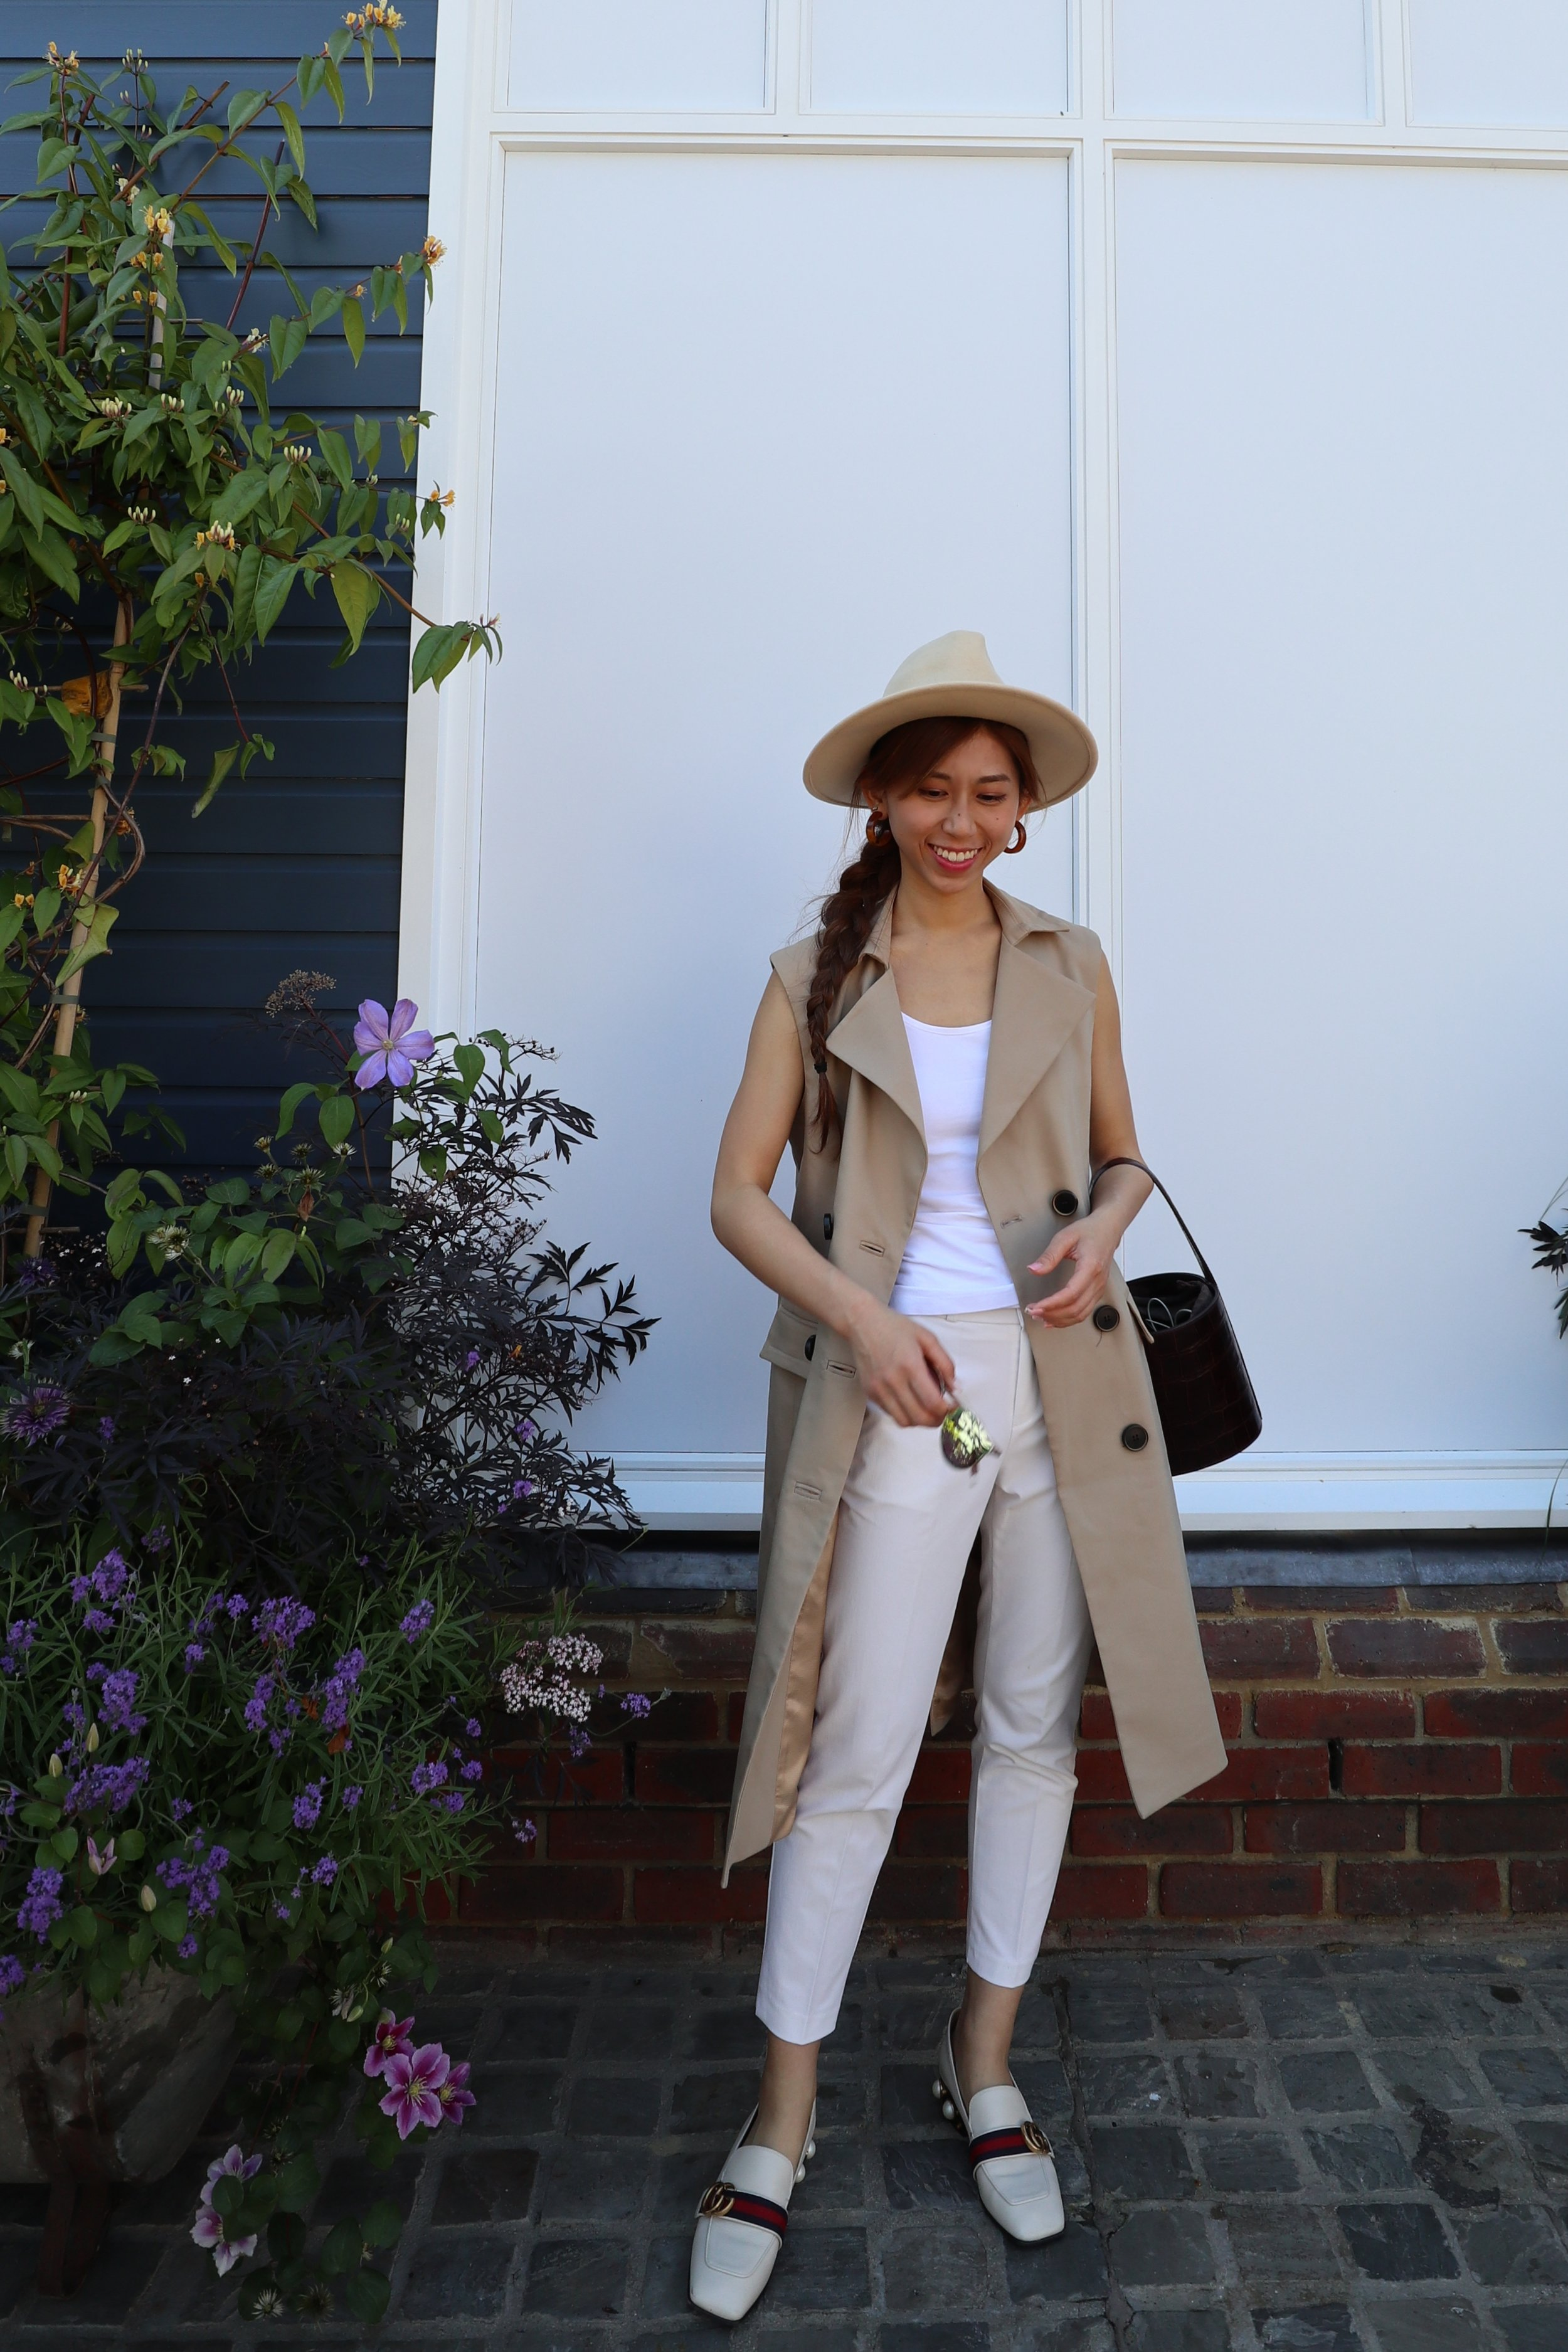 - Top: H&M white tankBottom: from KoreaJacket: ZARA double breasted waistcoat dressHat: LACKOFCOLOR ivory rancherBag: Staud mini shirley bag clear (tan faux)